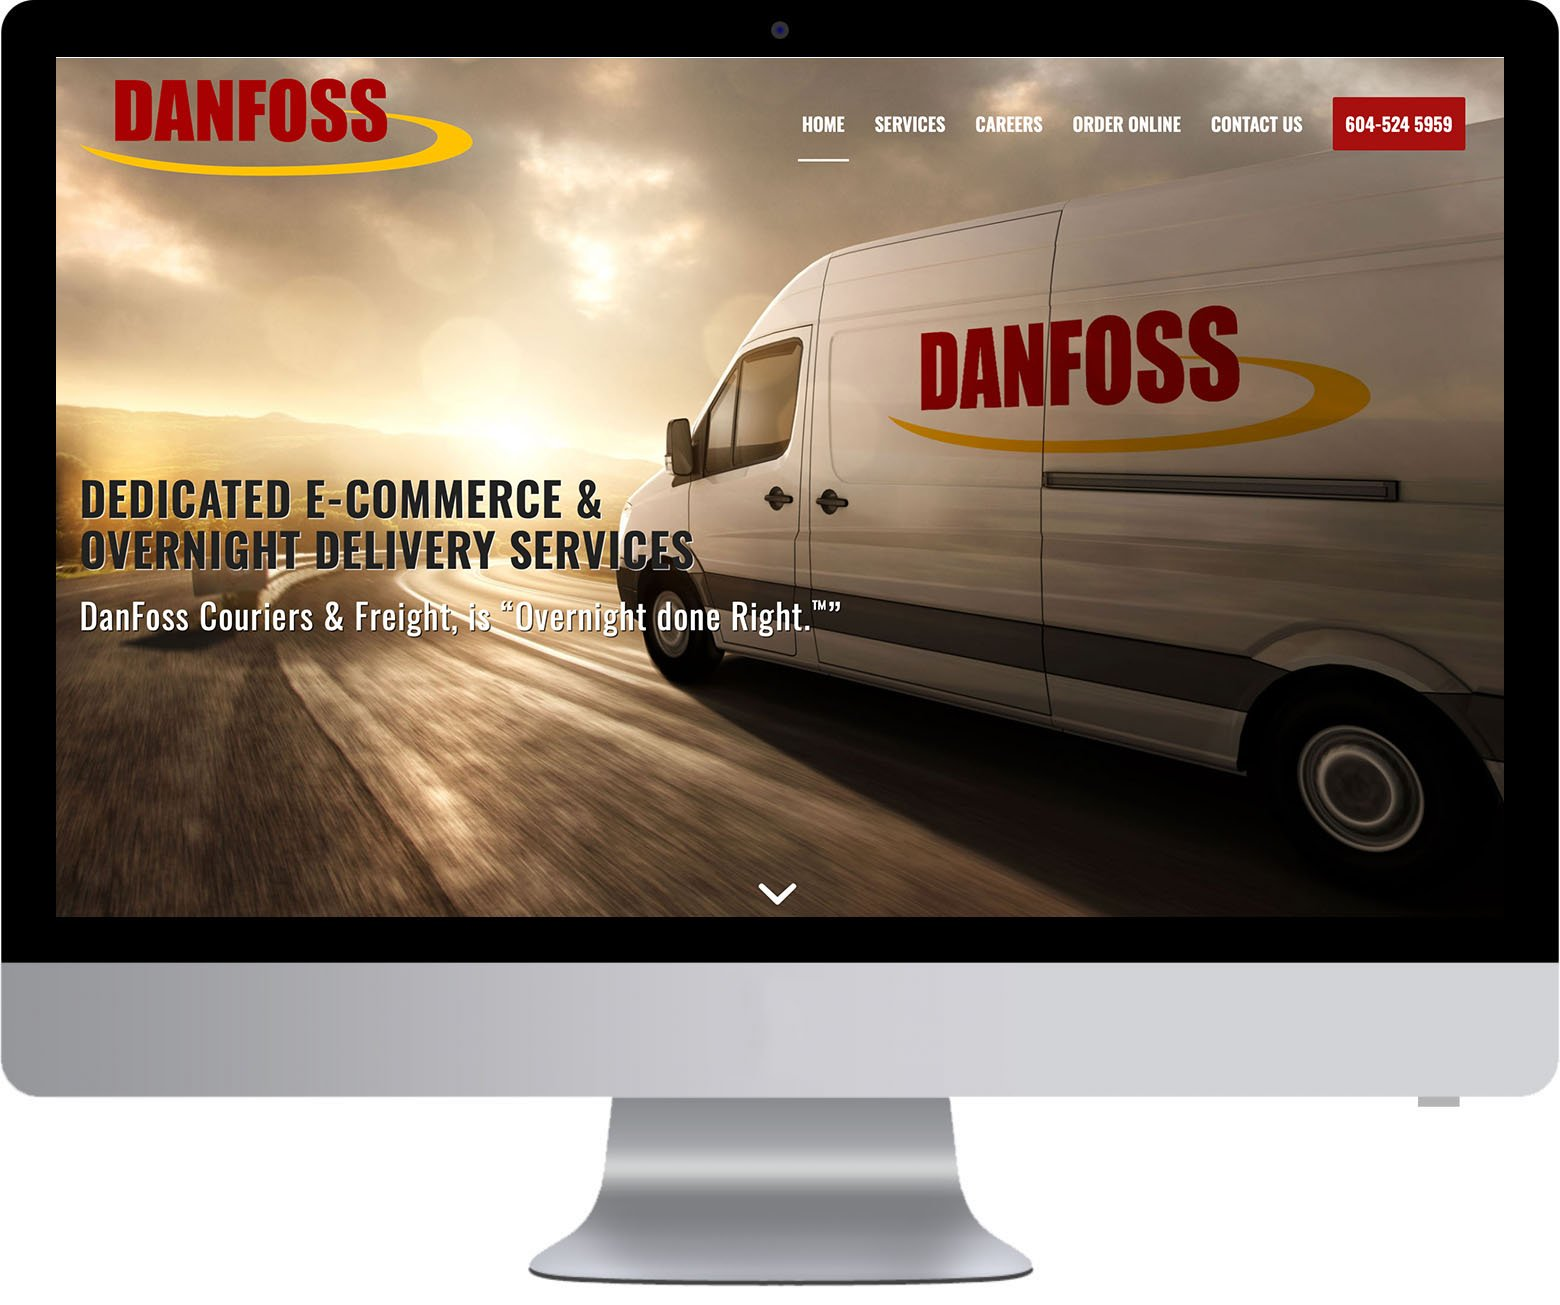 Delta Web Development - DanFoss